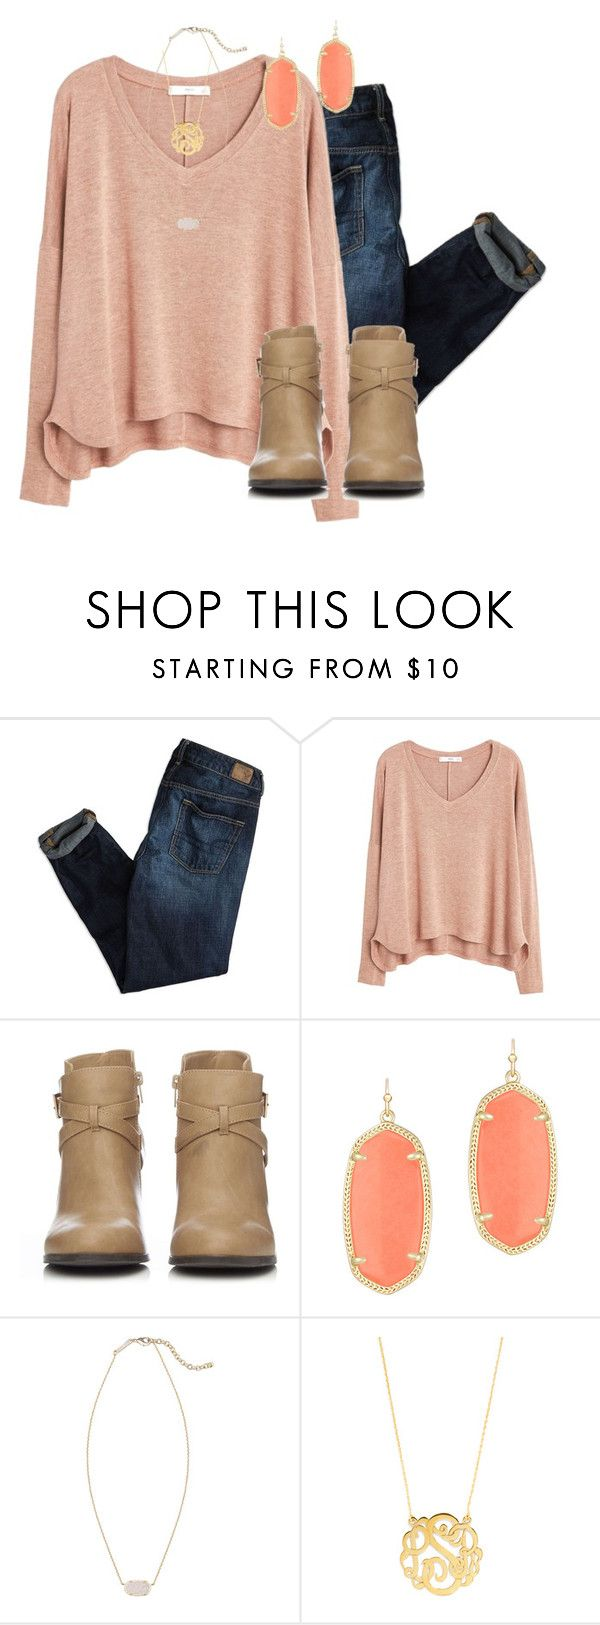 """""""Siked for Black Friday!!!!!"""" by preppy-101 ❤ liked on Polyvore featuring American Eagle Outfitters, MANGO, Wallis, Kendra Scott and BaubleBar"""